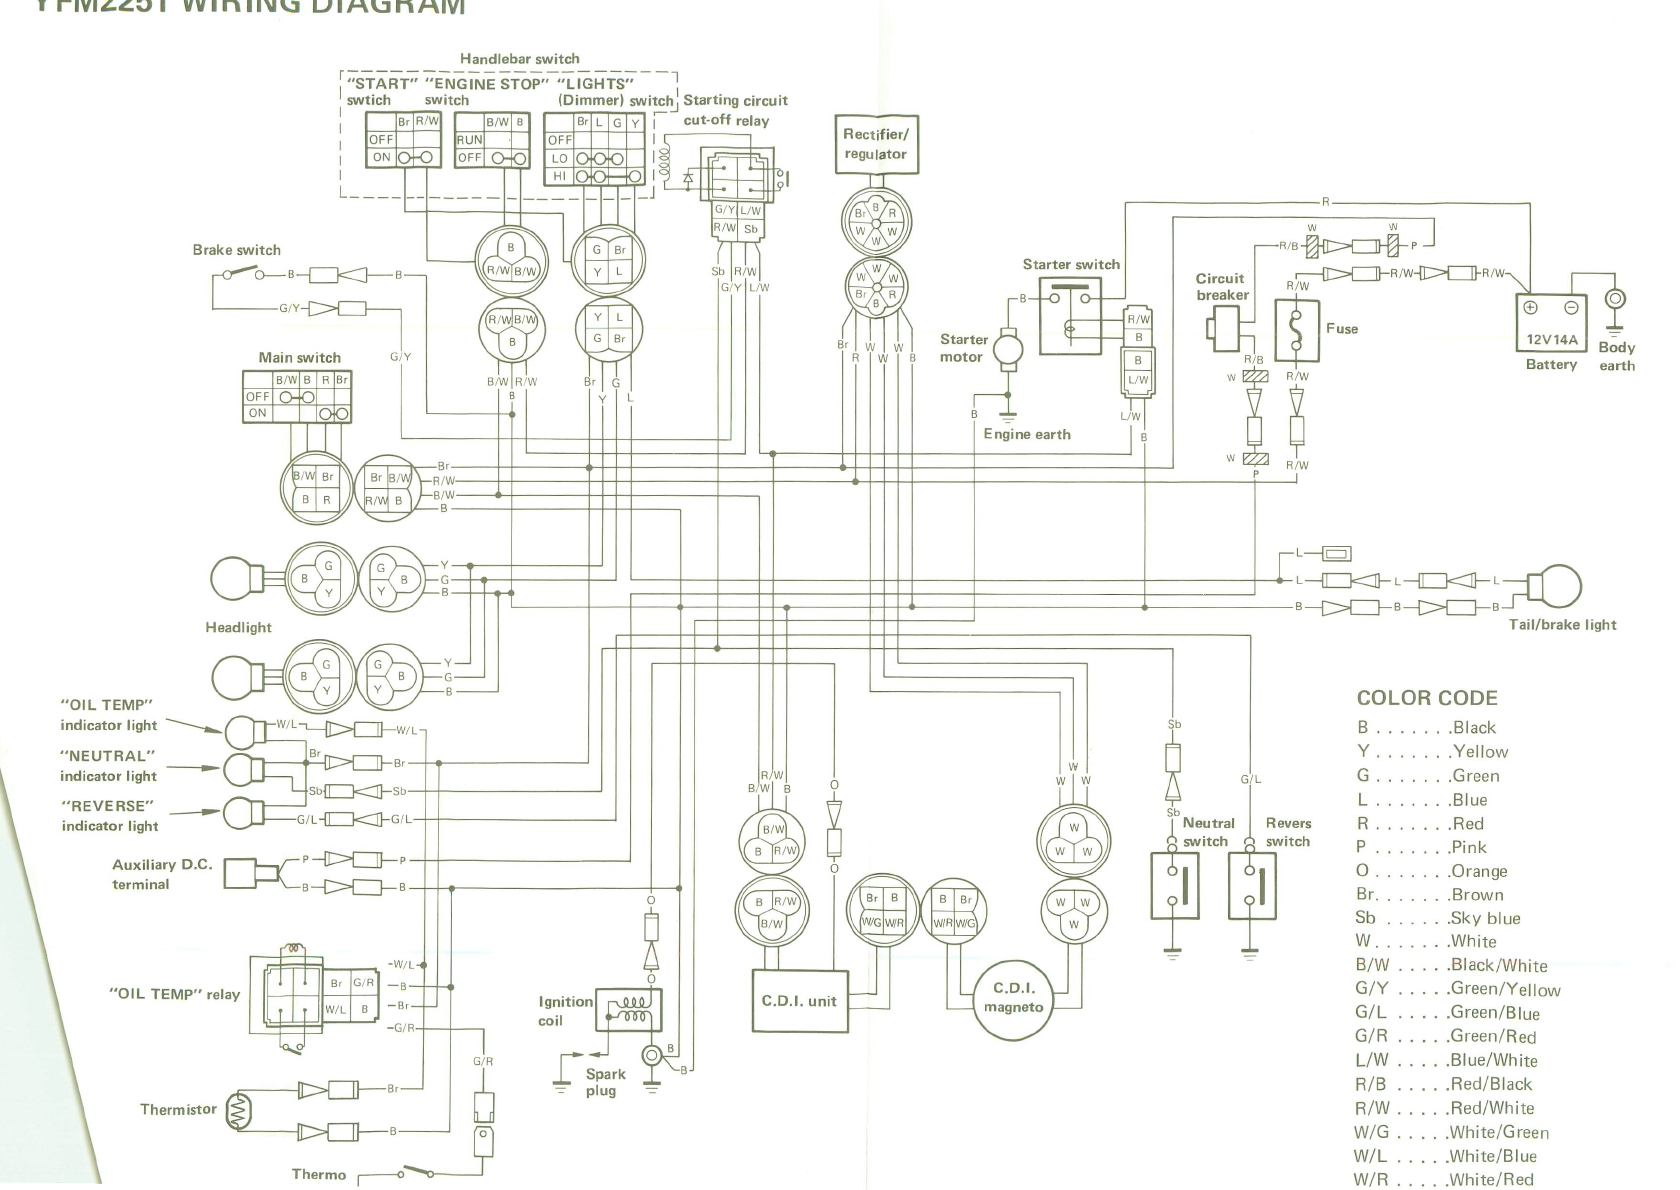 gy wiring diagram gy image wiring diagram yamaha 200 blaster wiring diagram wiring diagram on gy 200 wiring diagram